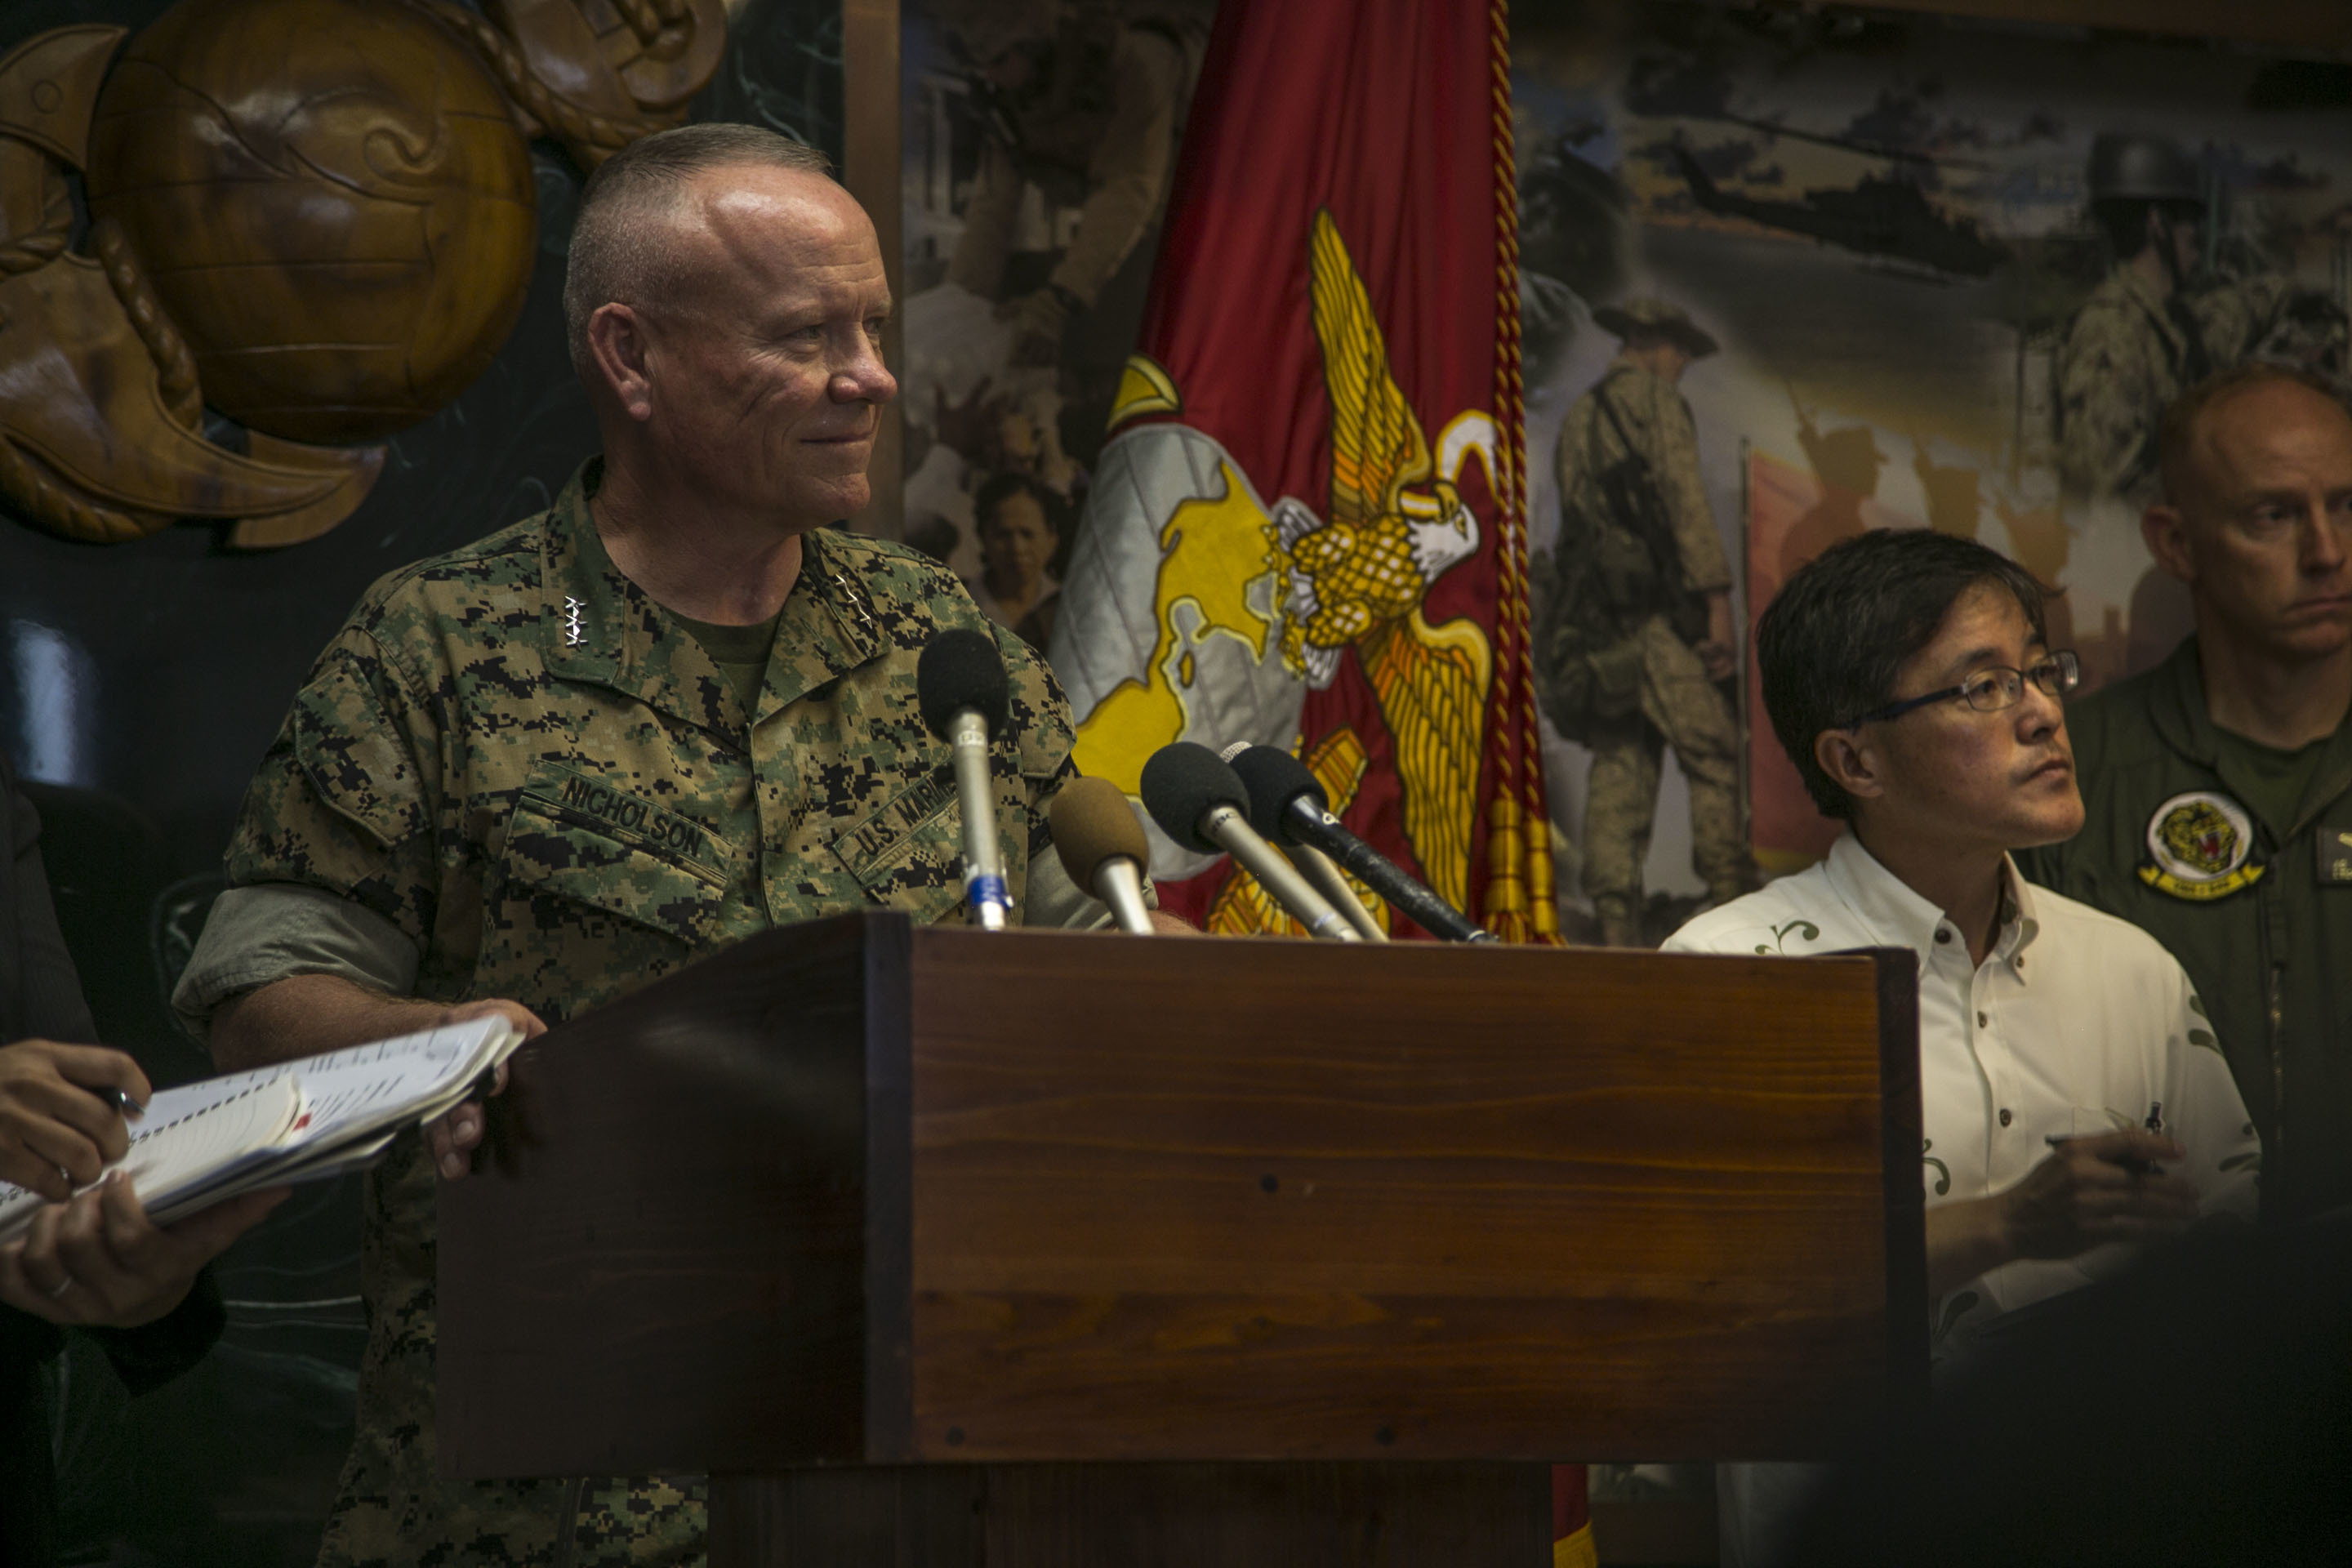 Lt. Gen. Lawrence D. Nicholson announces the resumption of AV-8B Harrier flight operations in Japan during a press conference Oct. 5, 2016 on Camp Foster, Okinawa, Japan following a Harrier mishap that occurred approximately 115 nautical miles off the coast of Okinawa, Sept. 22. US Marine Corps photo.